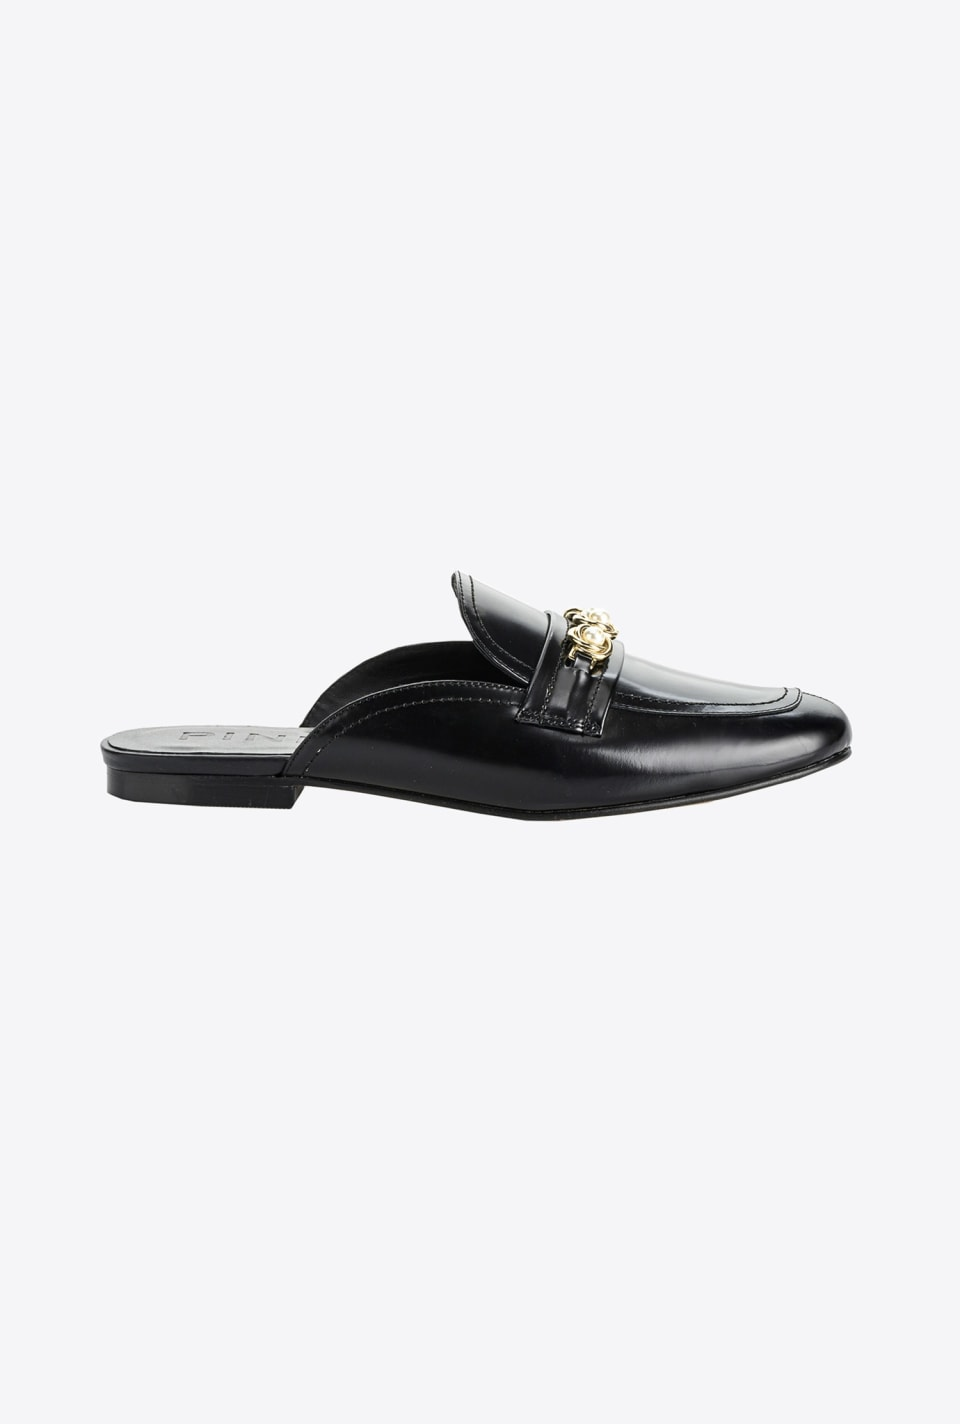 Leather mules - Pinko